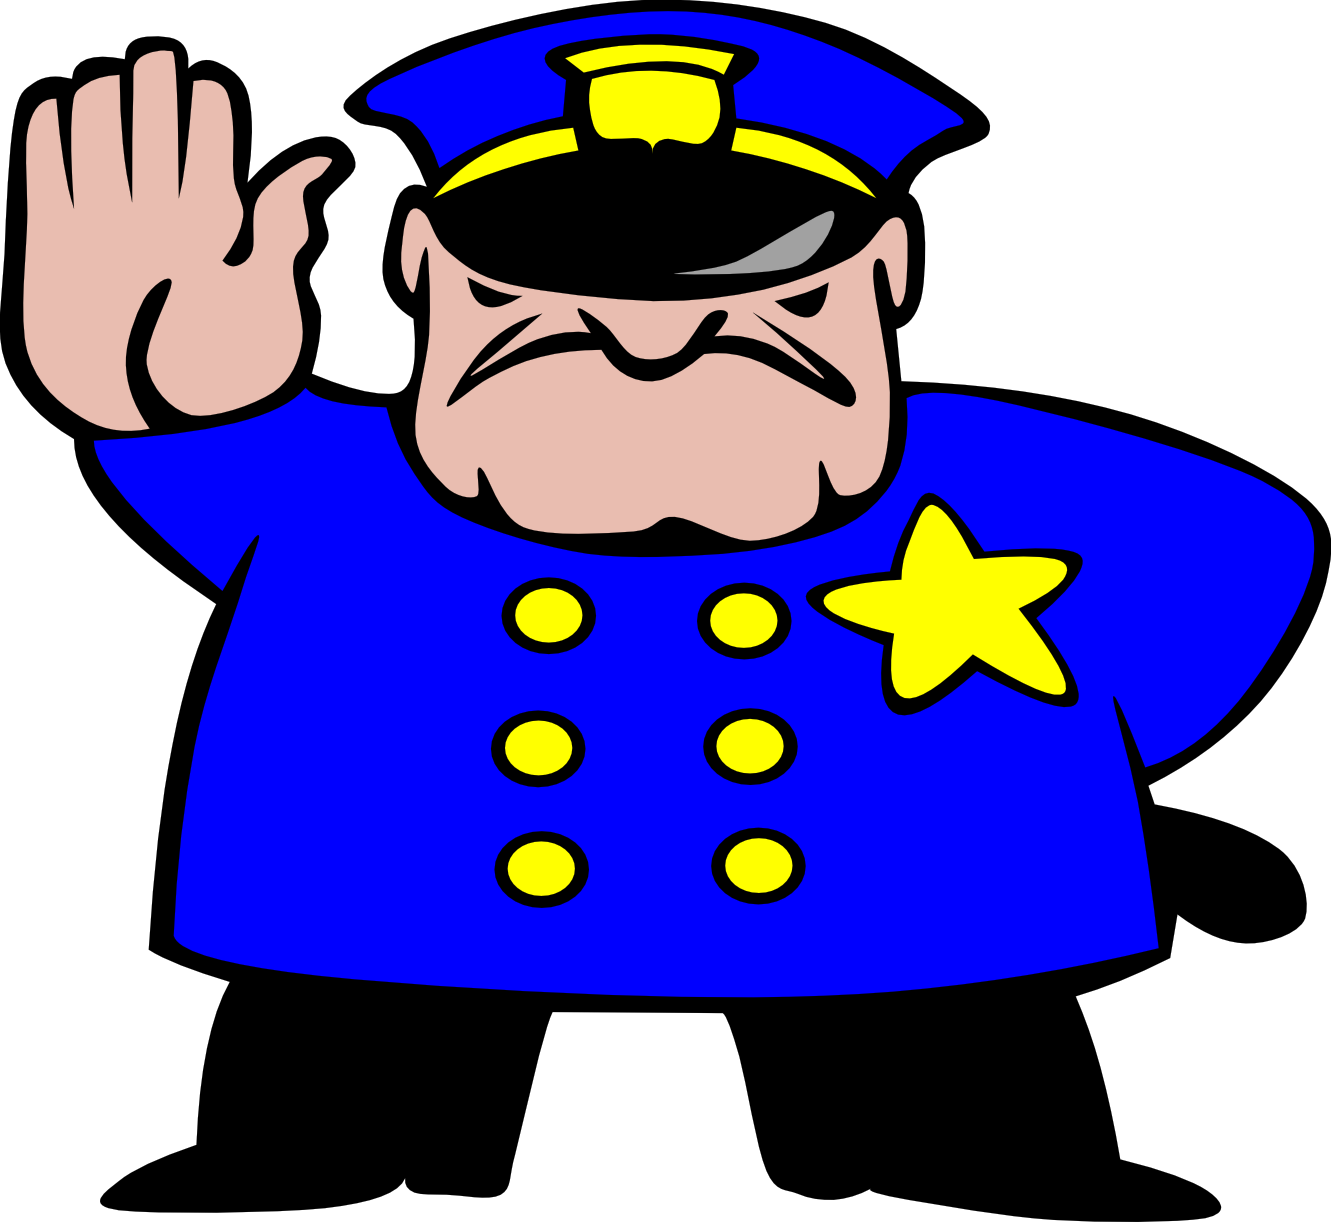 Handcuff clipart animated.  collection of police